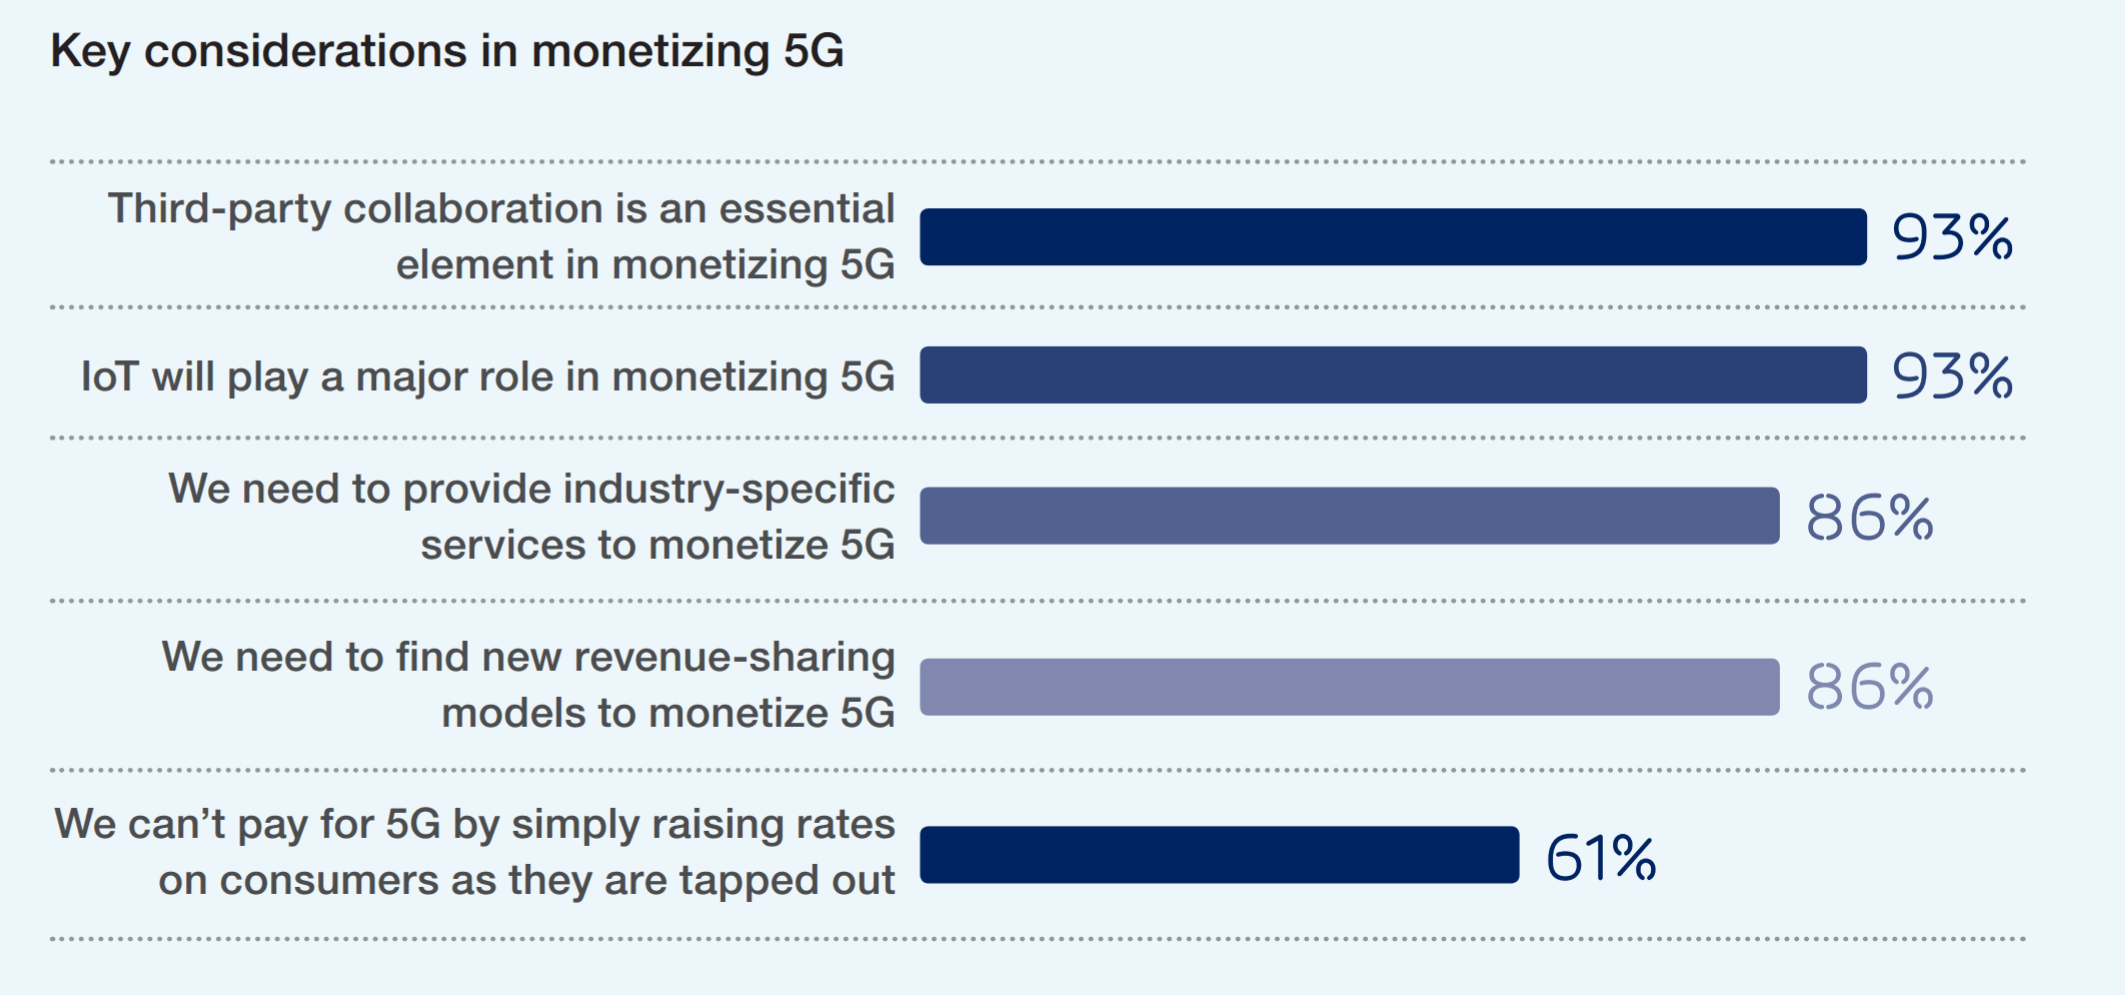 Global survey reveals new business models and revenue streams for 5G TechNative